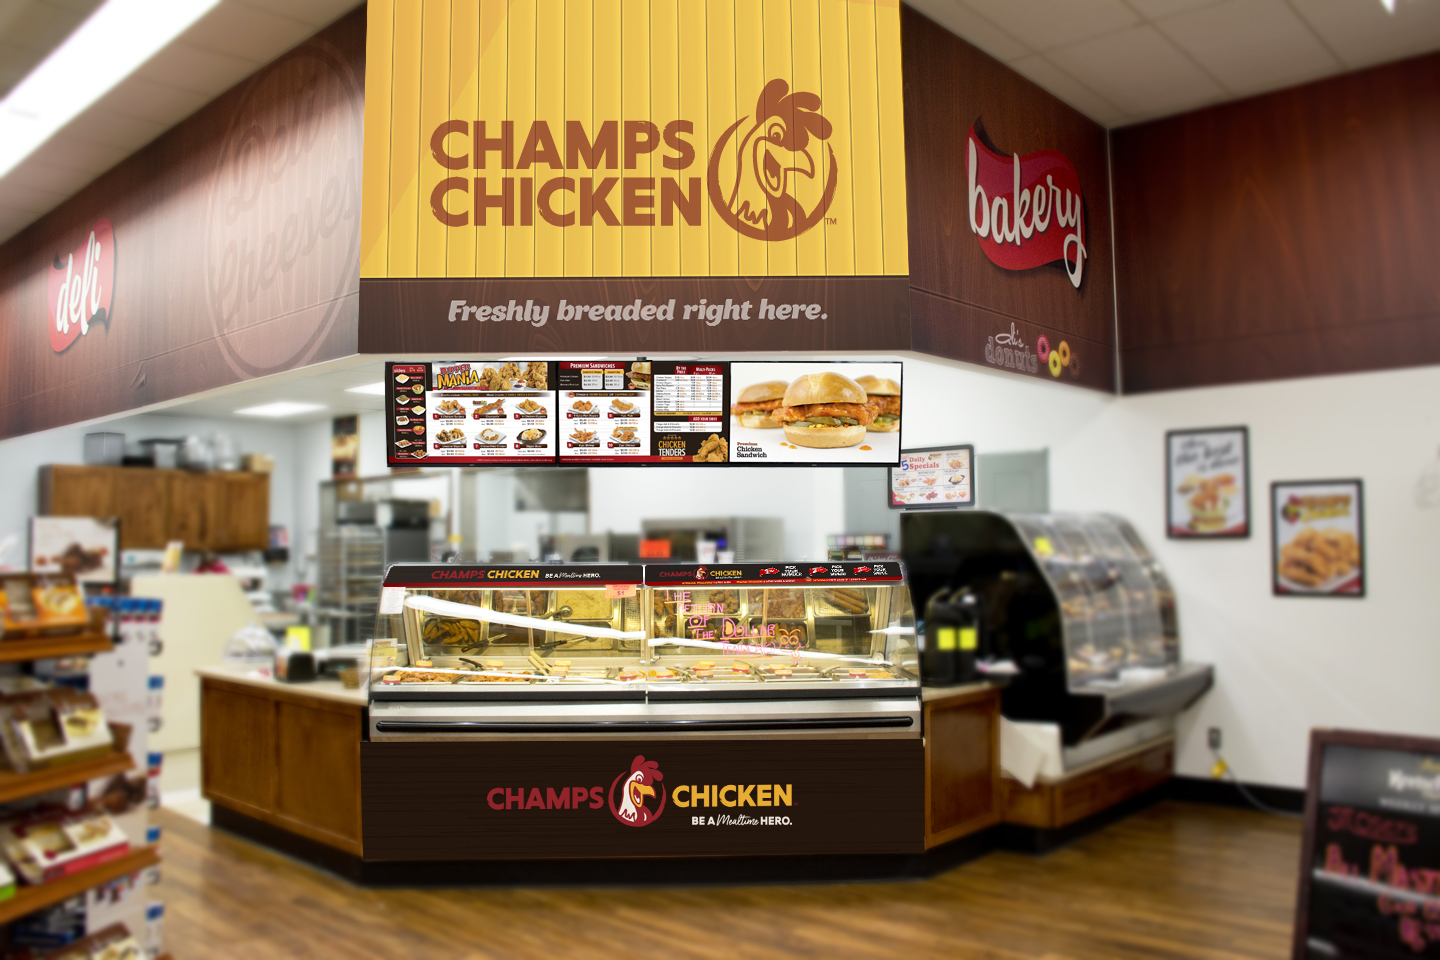 Champs Chicken's COVID-19 Frequently Asked Questions